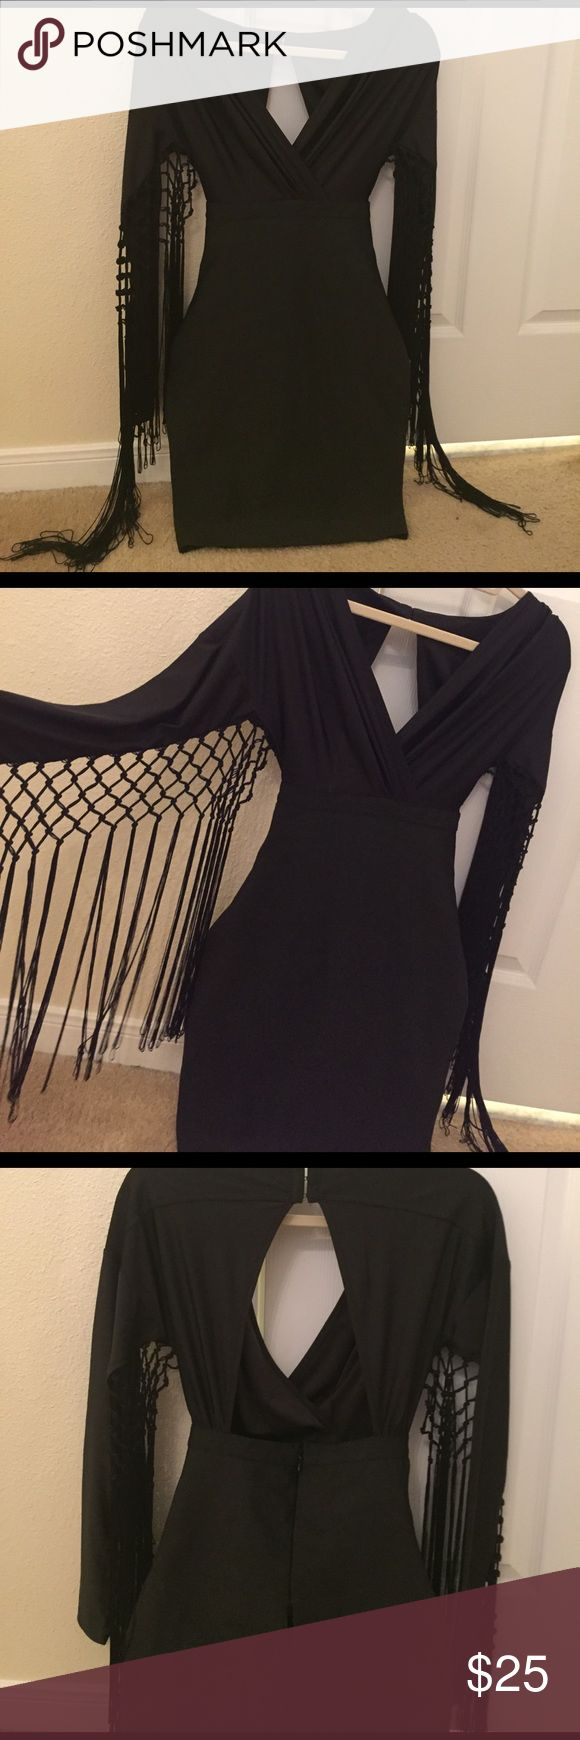 Sexy black dress✔️😍 Brand new never worn without tags! Bought from a Saks Sale! Super sexy black dress! Bandage material starting from the bust down fits tight! ✔️ has long sleeve with fringe hanging from them! ✨ Does have a small hole in the back wear the zipper is!!! See in the last picture! Was like that when purchased very easy to get fixed! ✨ WOW couture Dresses Mini